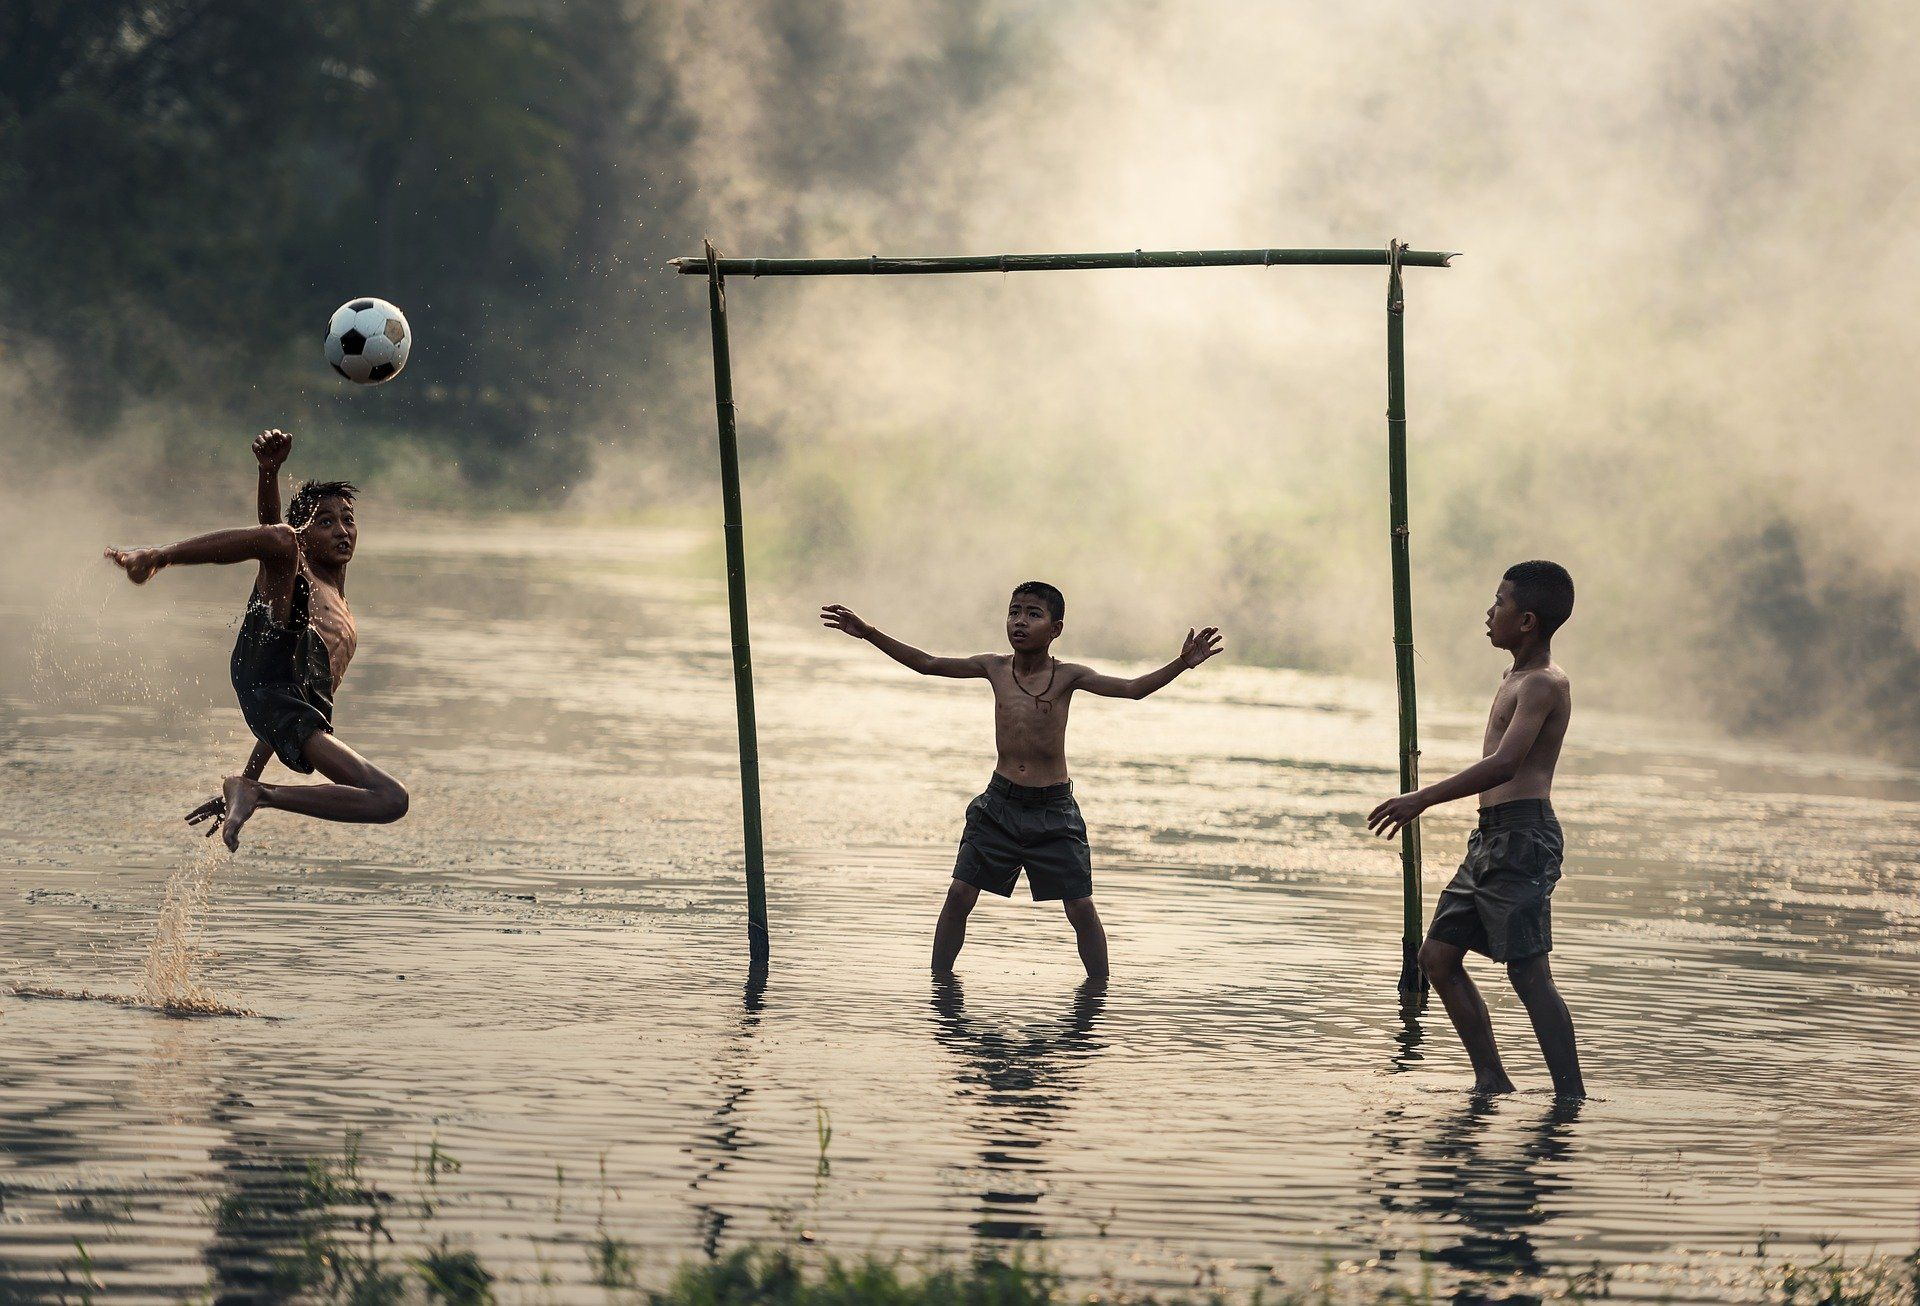 Children playing soccer in water